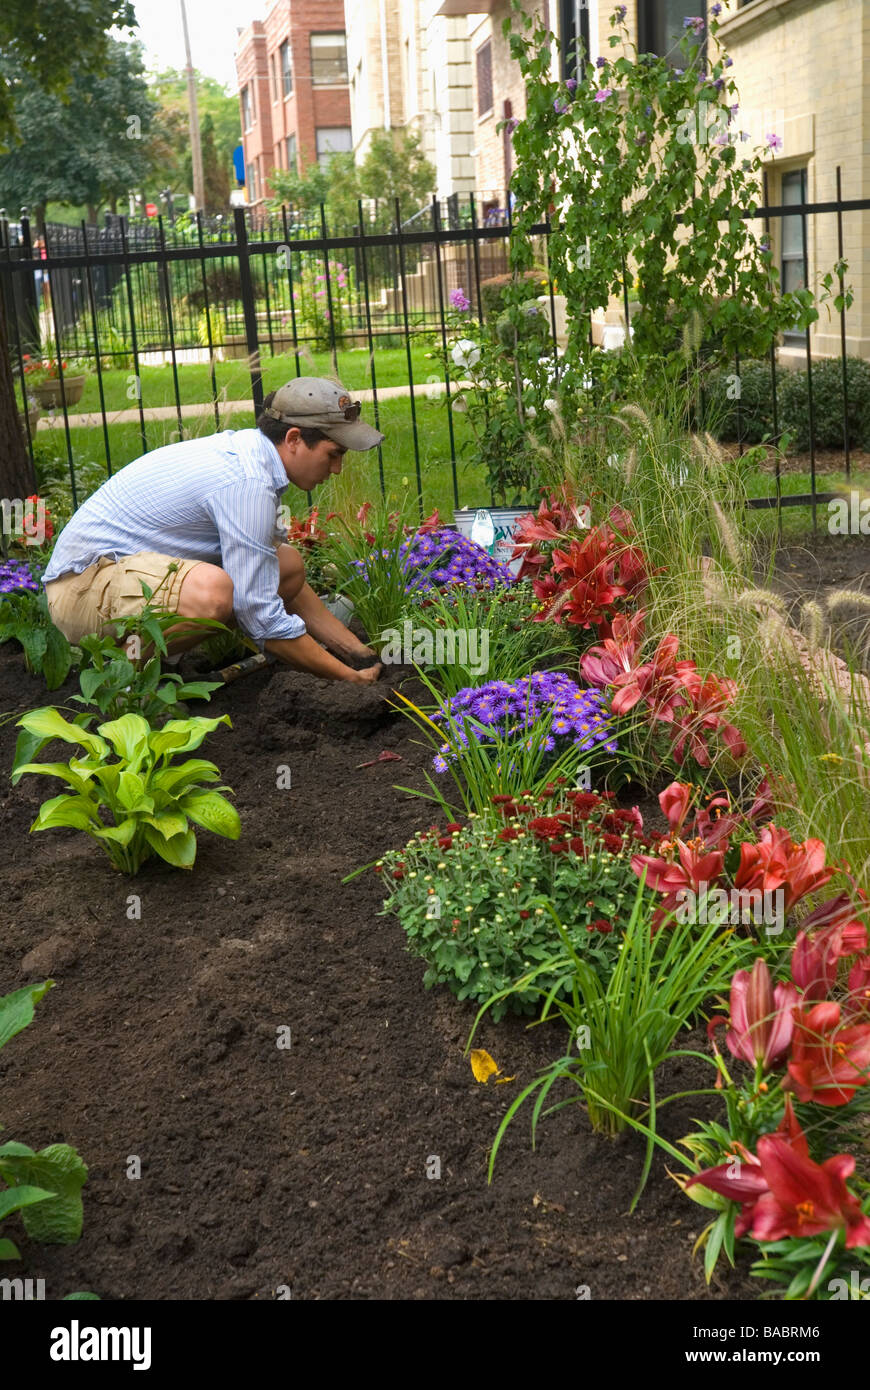 Hispanic Italian landscaping architect working in raised perennial flower garden for apartment building in Chicago - Stock Image